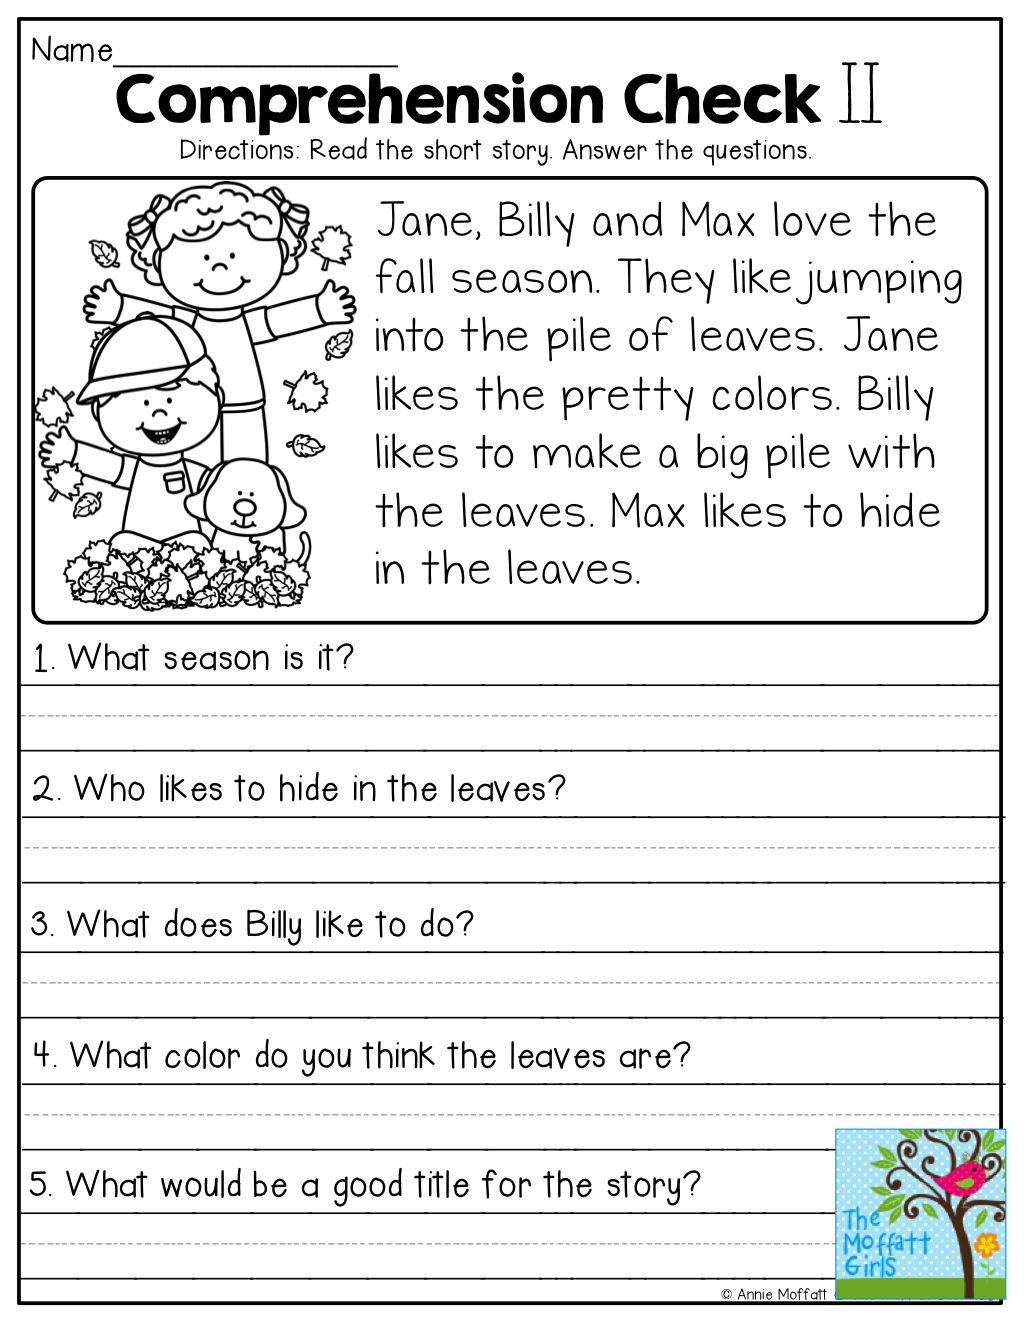 Worksheet 1 Grade Reading reading 1 grade scalien comprehension worksheets for besides reading